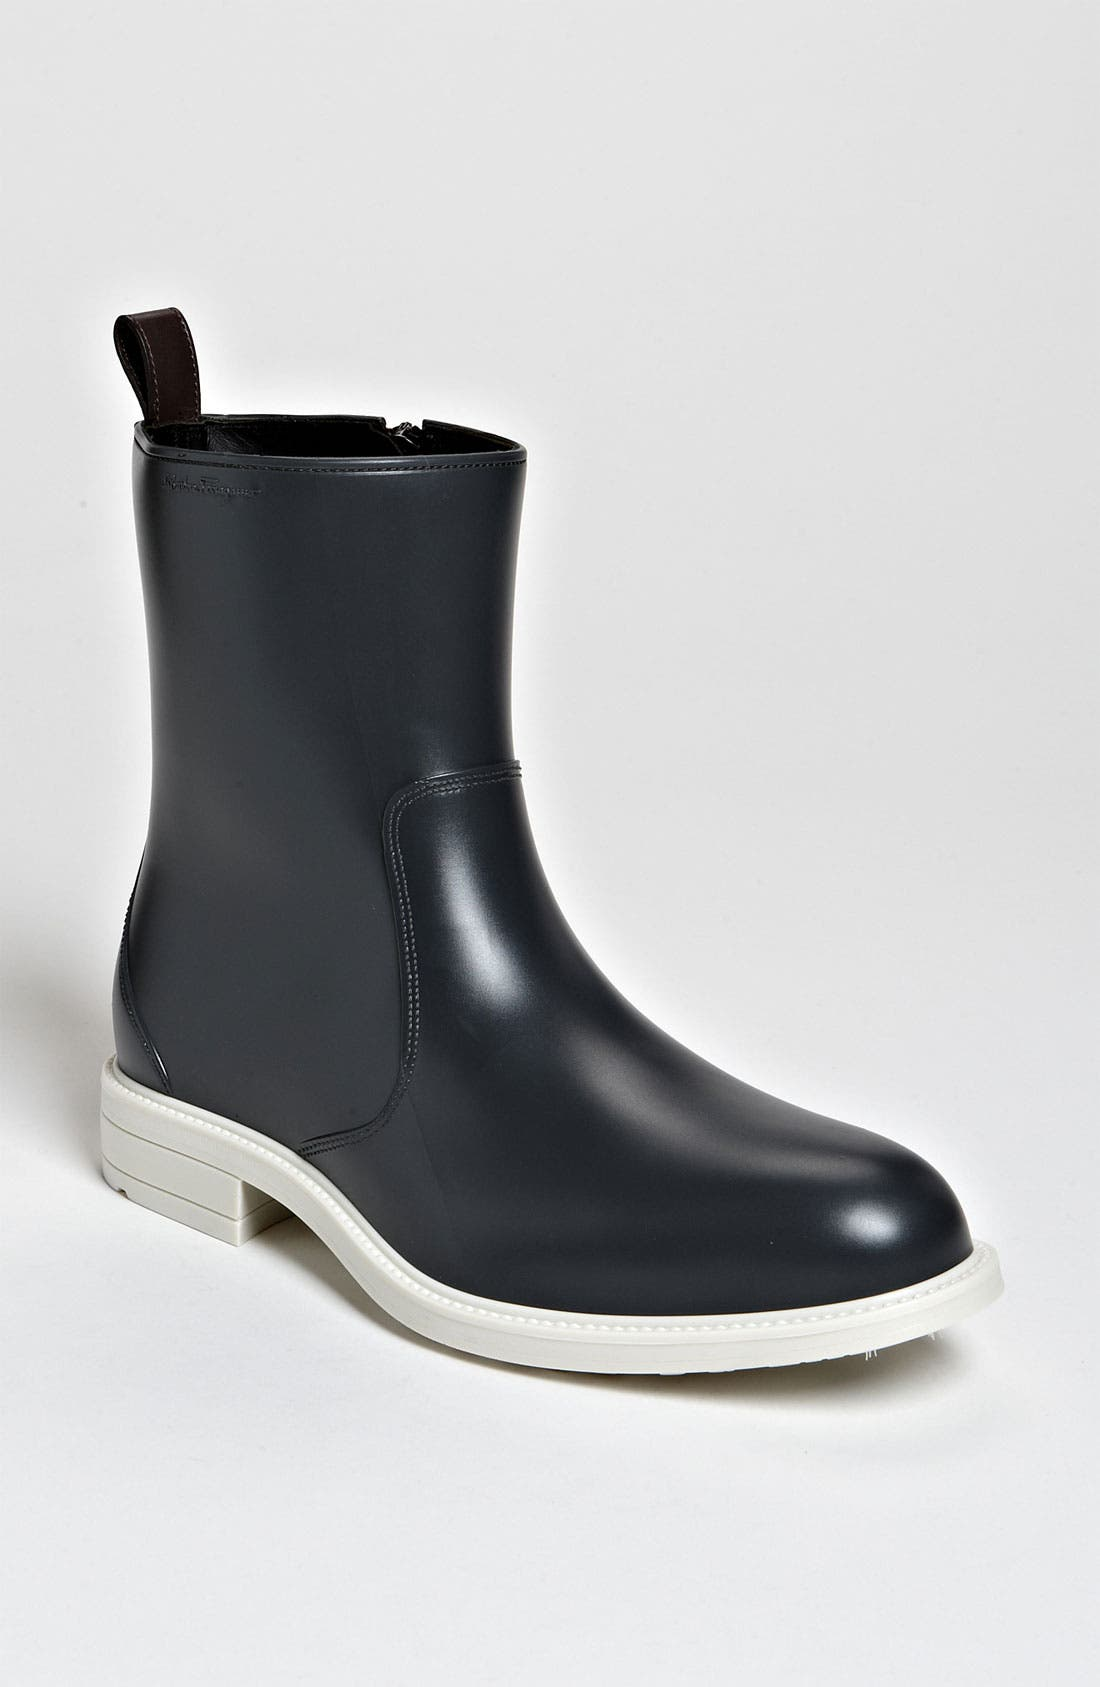 Main Image - Salvatore Ferragamo 'Baltimora' Rain Boot